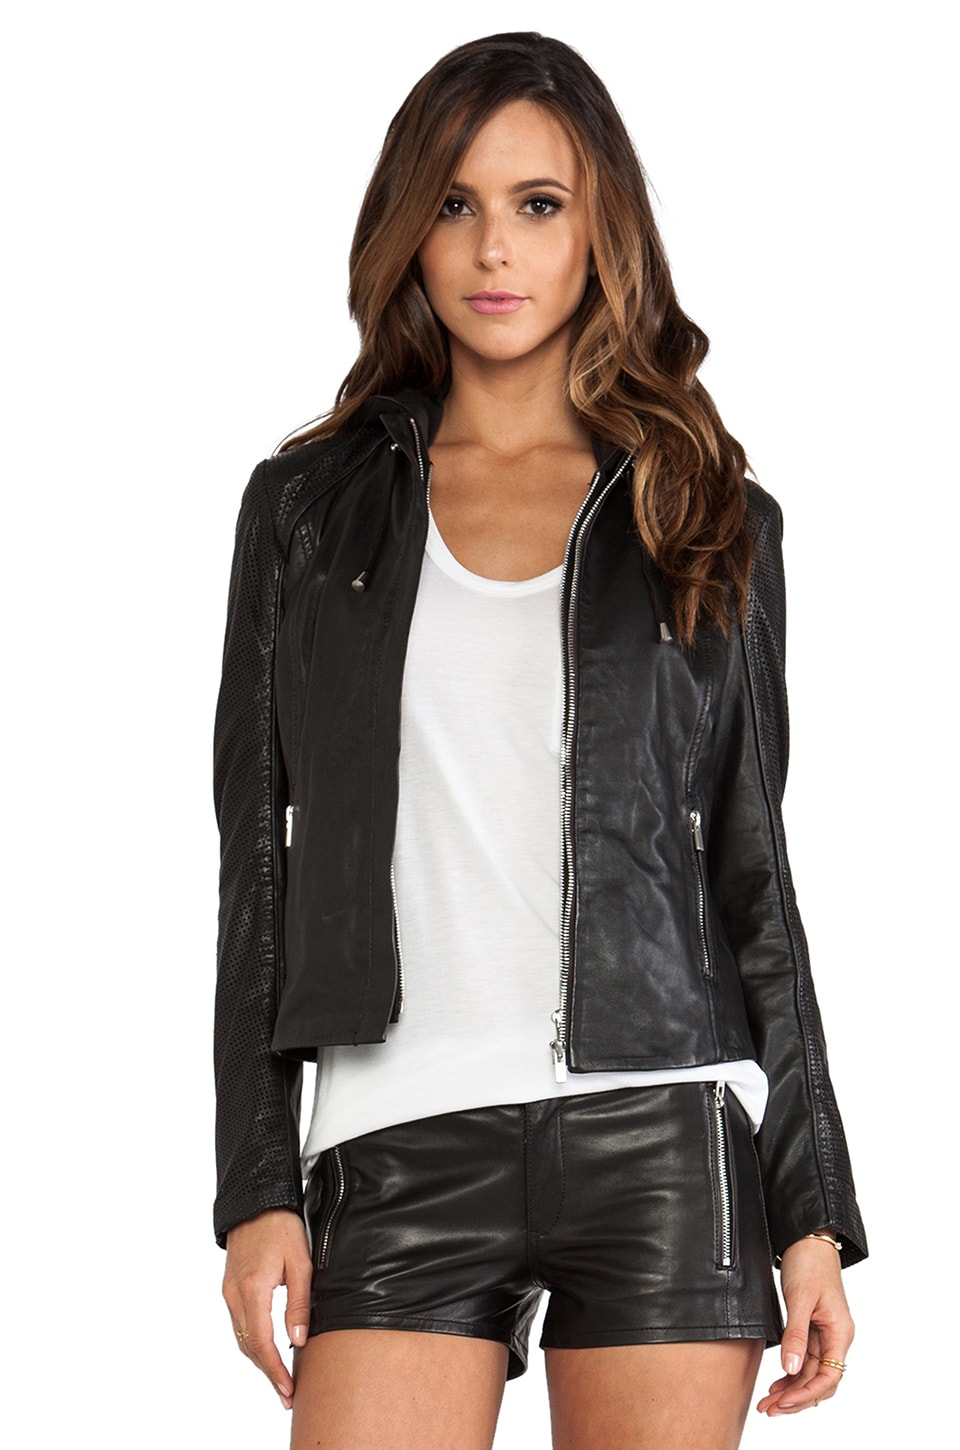 LaMarque Audrey Biker Jacket in Black